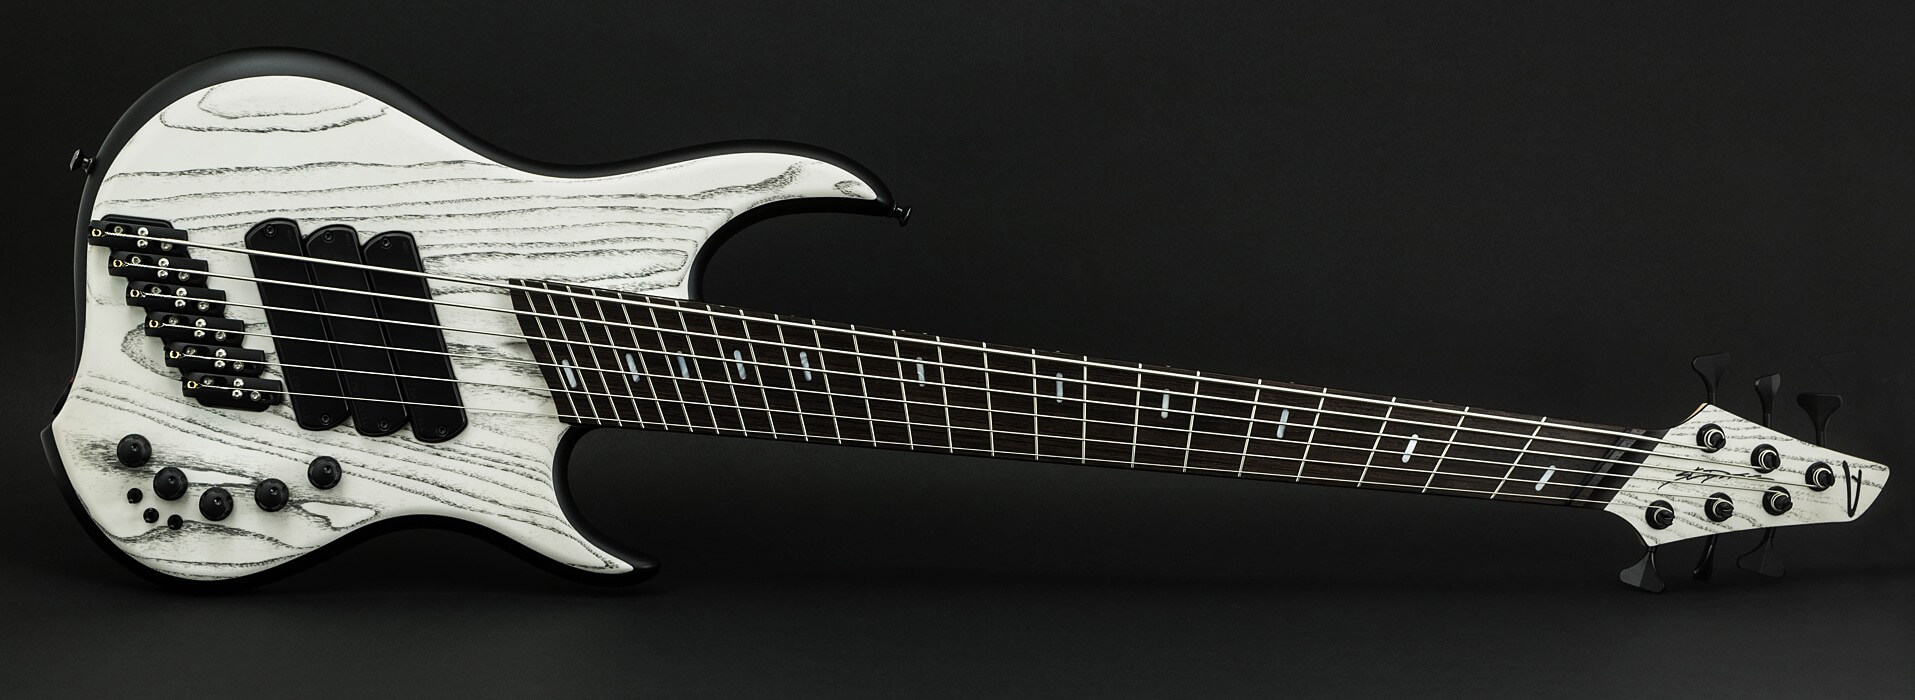 z3x-3-band-3-toggle-ash-top-reverse-ceruse-maple-neck-wenge-fb-speedo-bars--blank-main-page.jpg